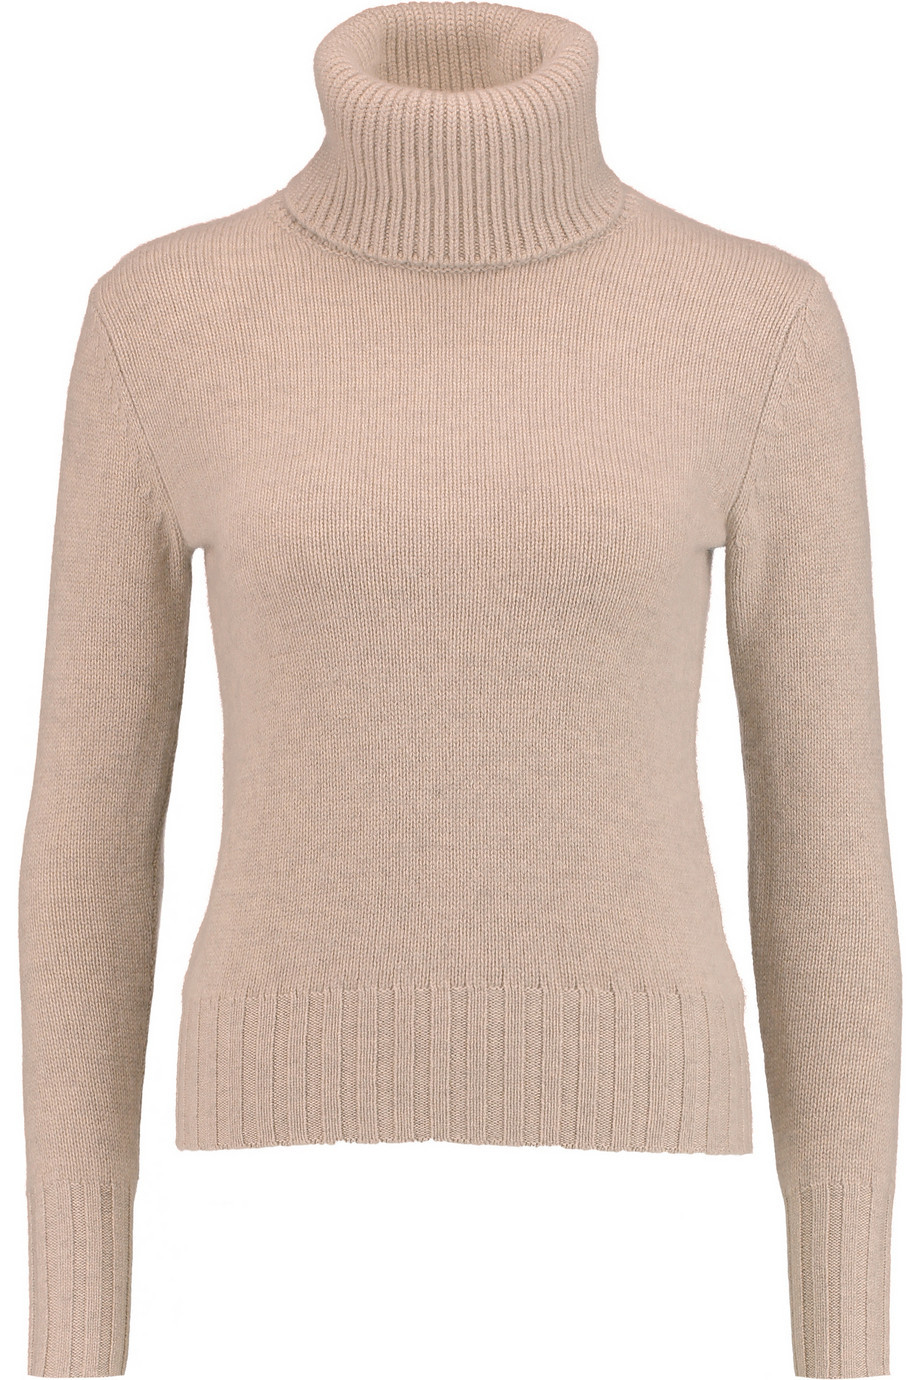 Cashmere Turtleneck Sweater Sand - pattern: plain; neckline: roll neck; style: standard; predominant colour: nude; occasions: casual, work, creative work; length: standard; fit: slim fit; fibres: cashmere - 100%; sleeve length: long sleeve; sleeve style: standard; texture group: knits/crochet; pattern type: knitted - fine stitch; season: a/w 2015; wardrobe: investment